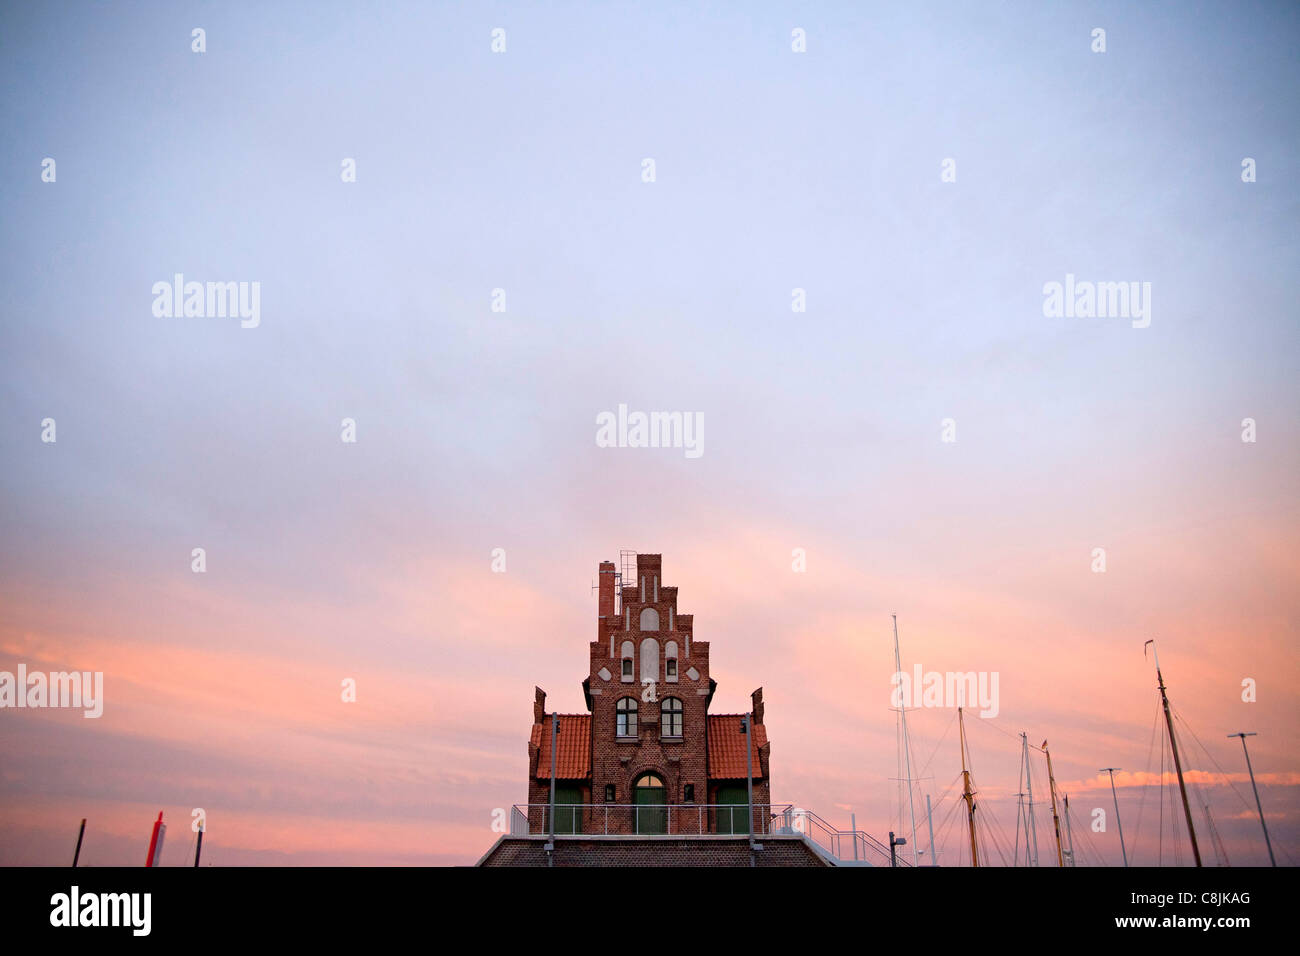 building of the Maritime pilots in the Hanseatic City of Stralsund, Mecklenburg-Vorpommern, Germany - Stock Image